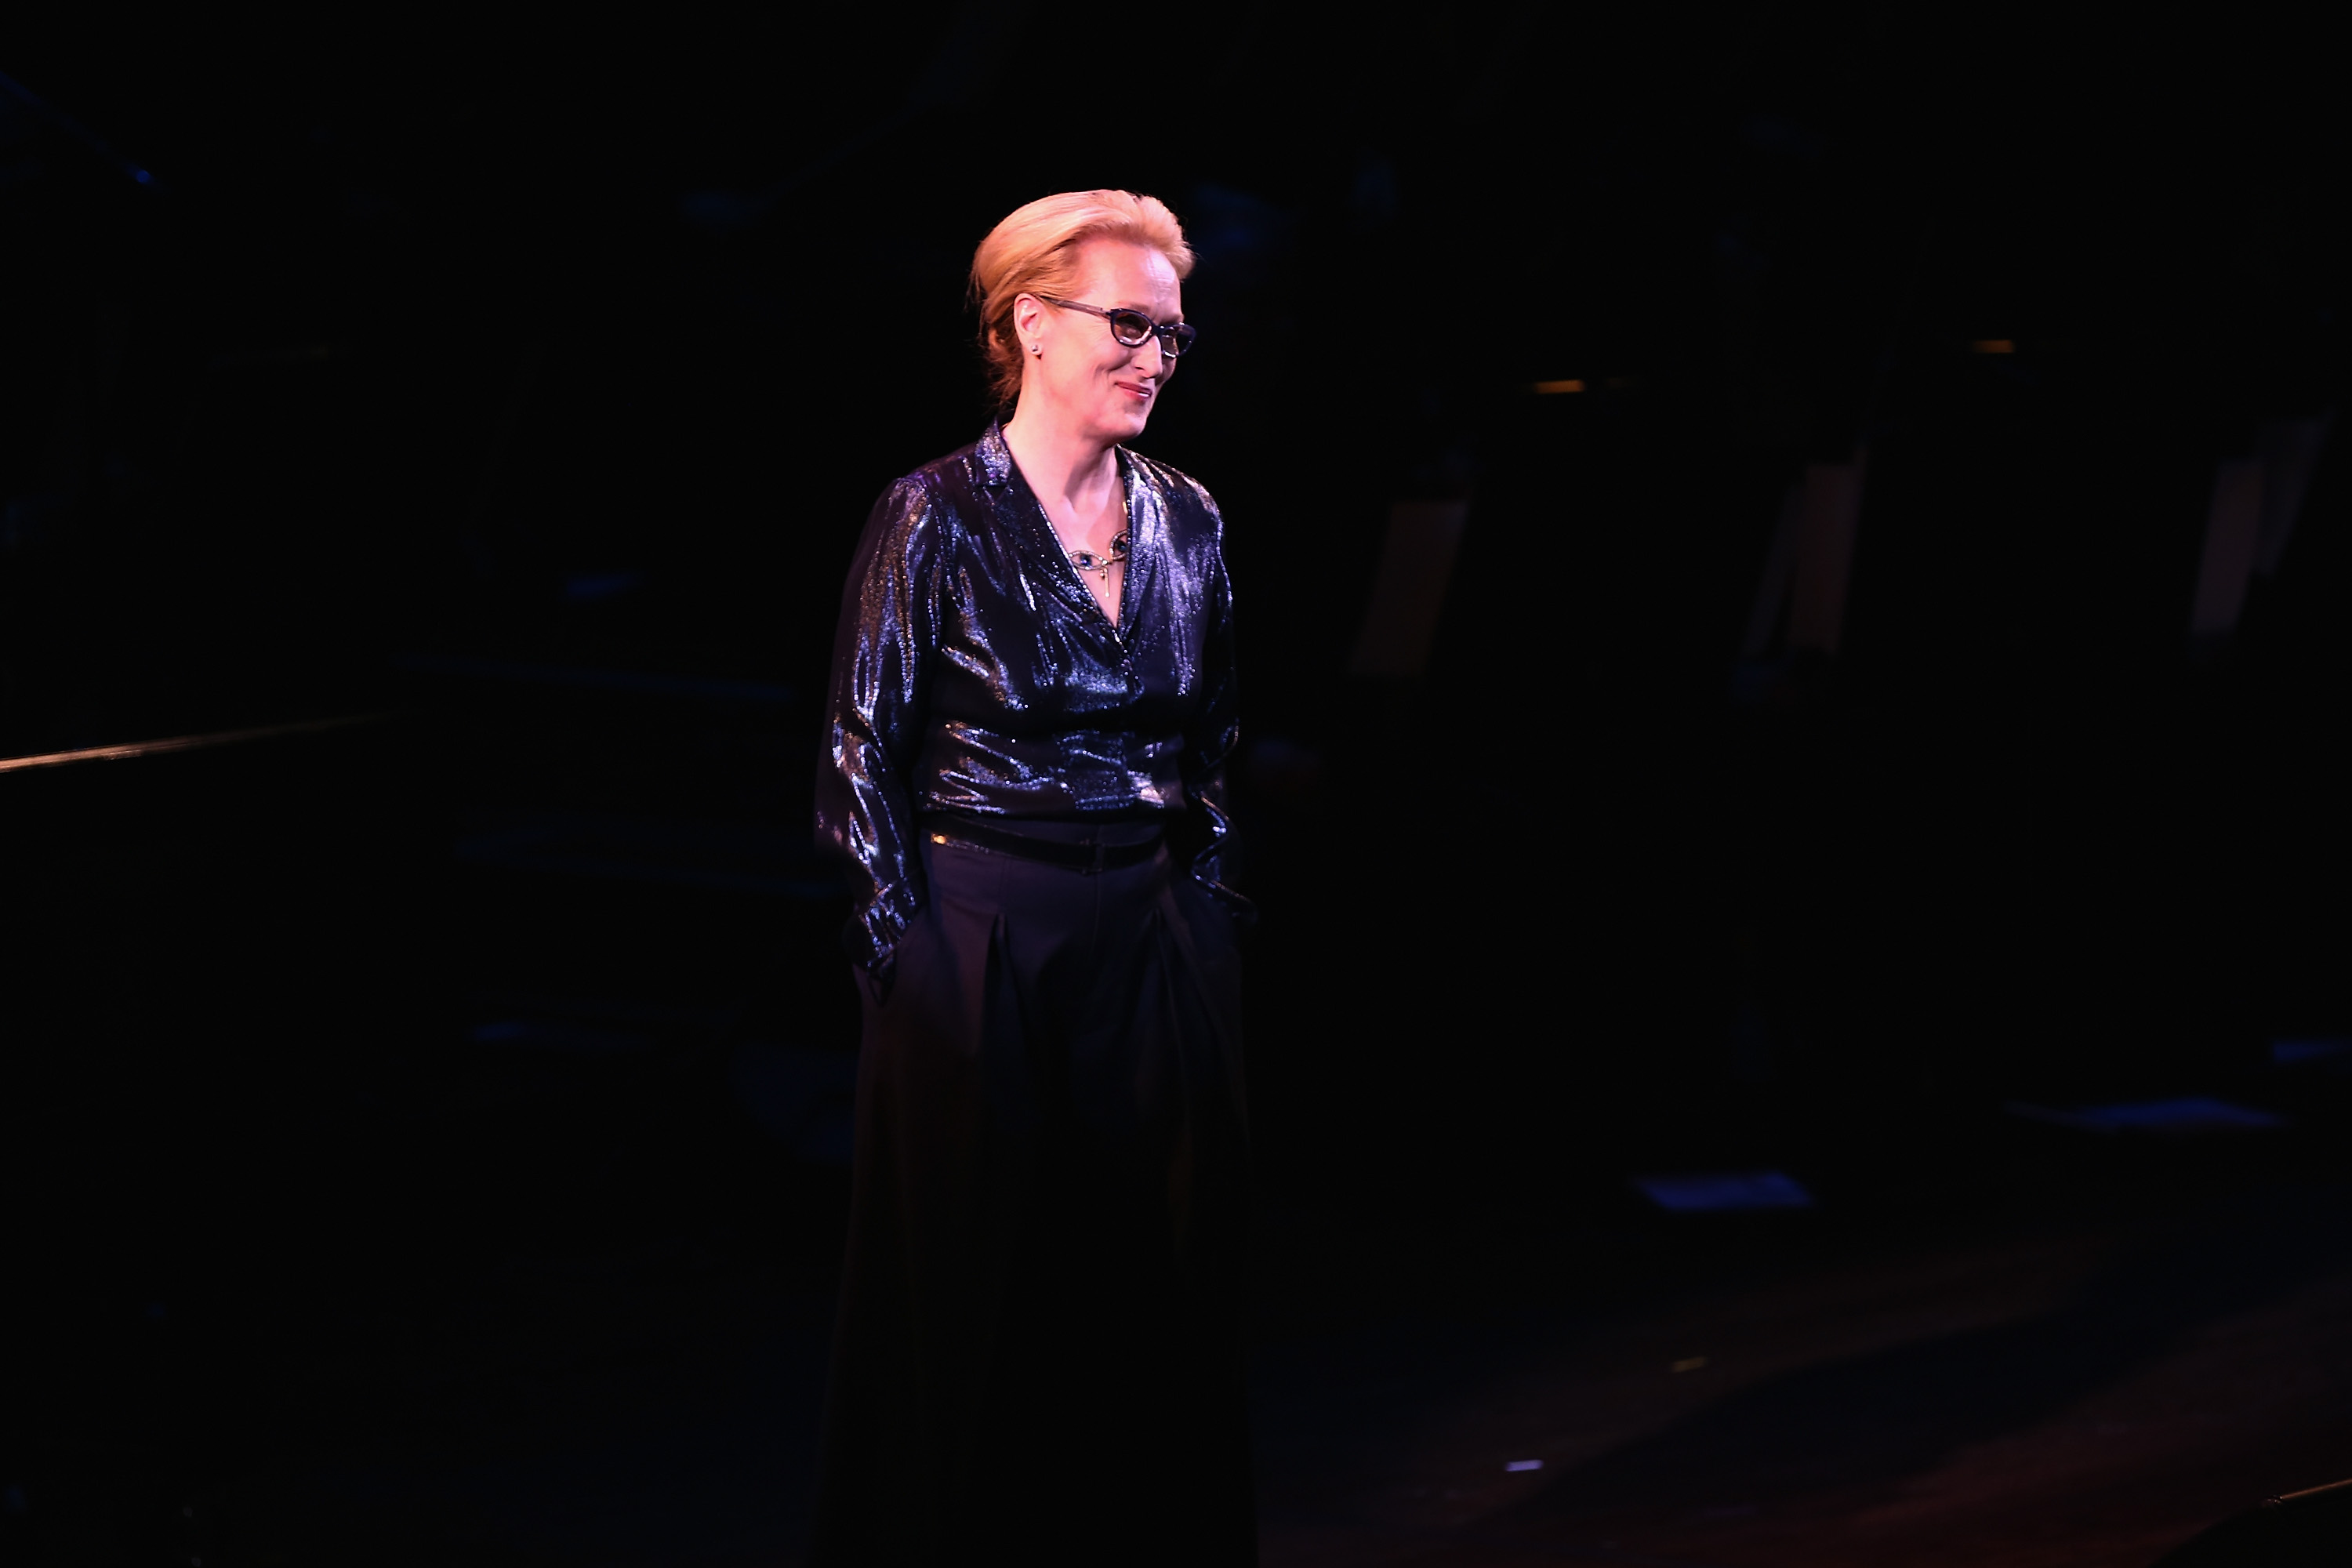 Meryl Streep attends SeriousFun Children's Network 2015 New York Gala: An Evening of SeriousFun Celebrating the Legacy of Paul Newman at Avery Fisher Hall at Lincoln Center for the Performing Arts on March 2, 2015 in New York City.